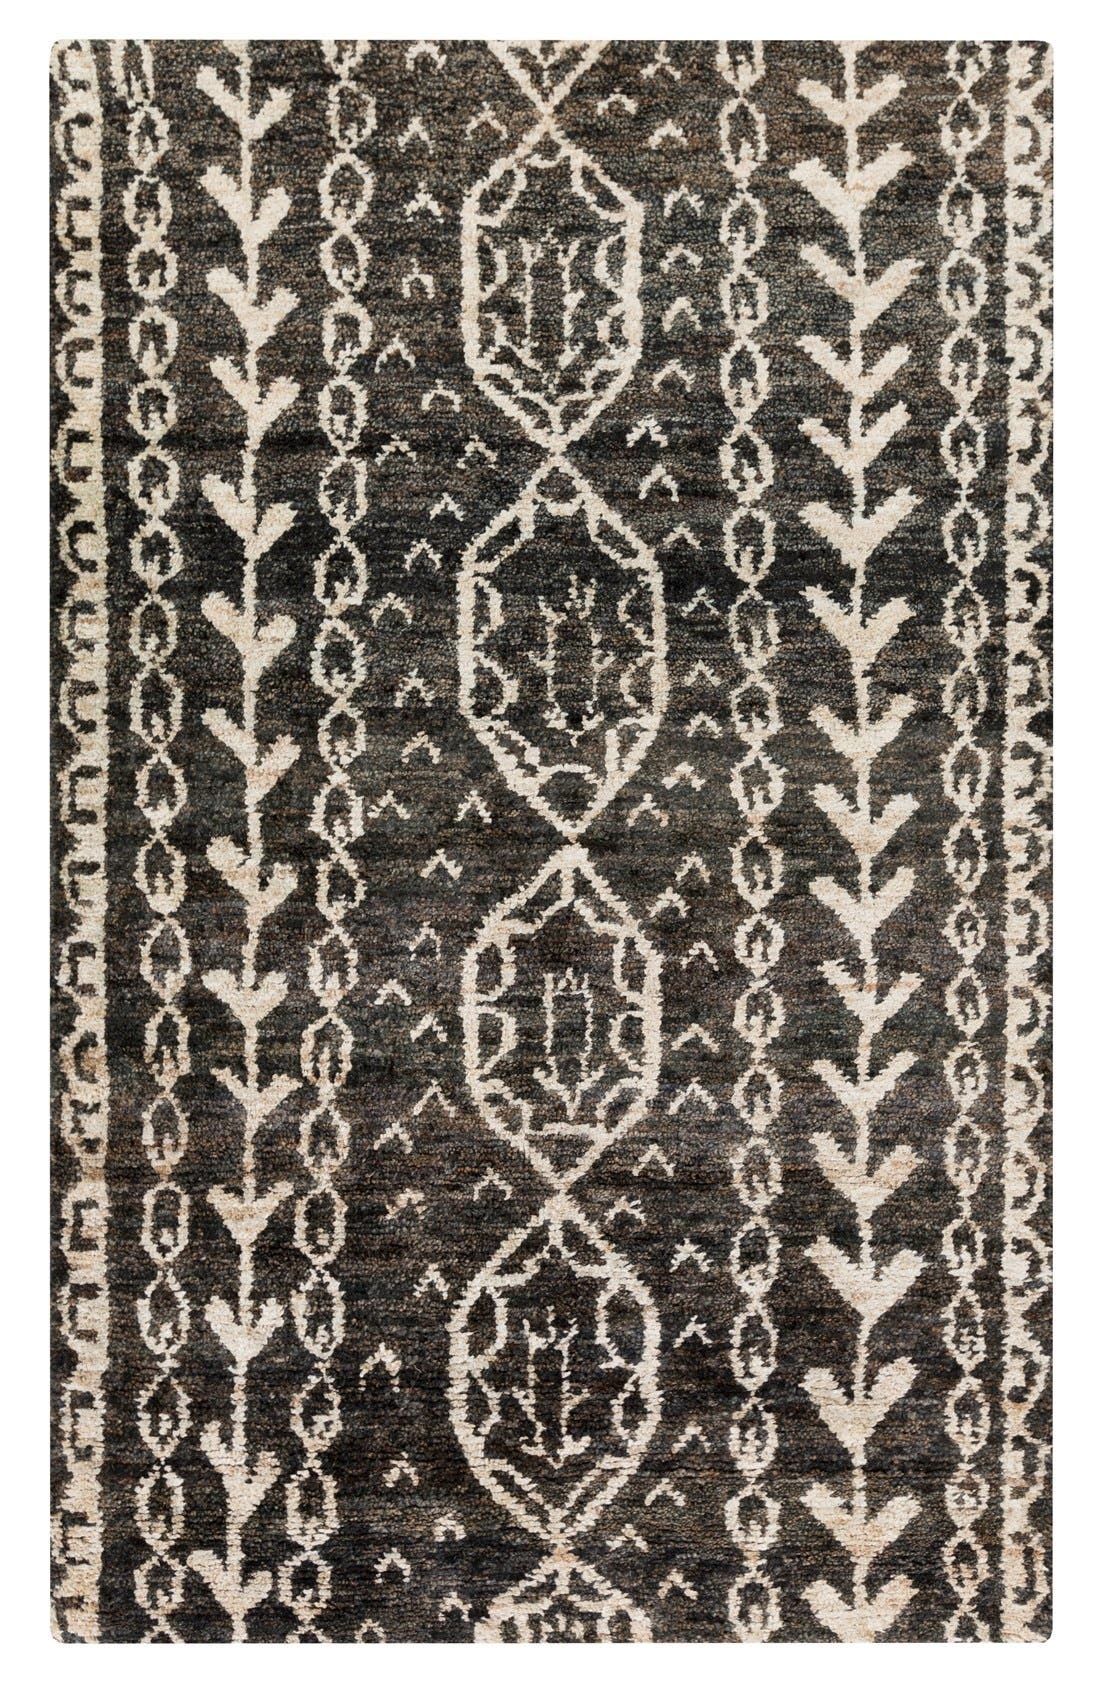 Alternate Image 1 Selected - Surya Home Jute Rug